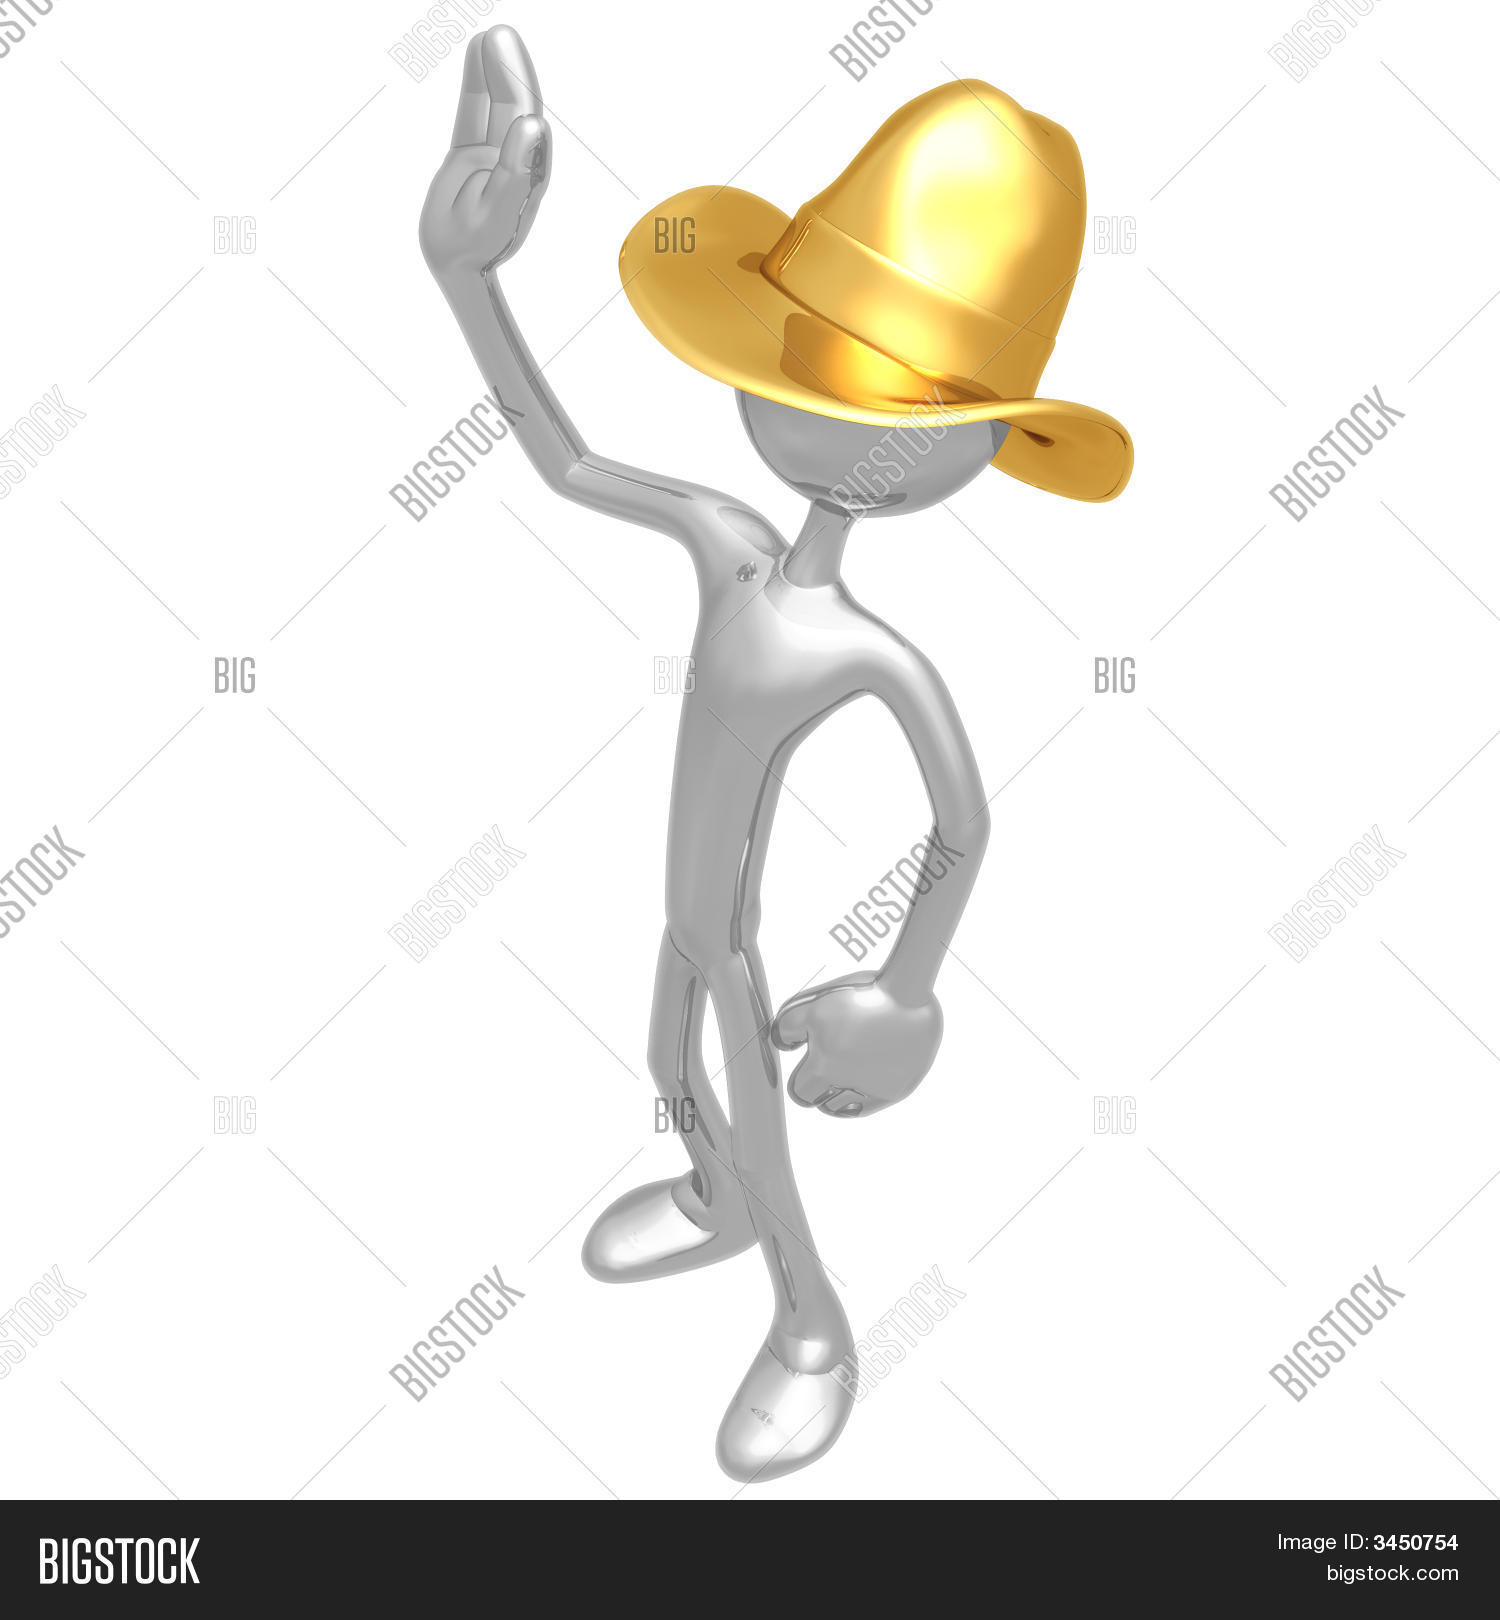 3d,abstract,art,buckaroo,cartoon,cg,cgi,concept,conceptual,cowboy,cowhand,cowman,cowpoke,cowpuncher,figure,gesture,gold,golden,greeting,guy,hand,hat,hello,hi,human,humanoid,icon,illustration,isolated,man,person,presentation,raised,render,stylized,symbolic,toon,waving,west,western